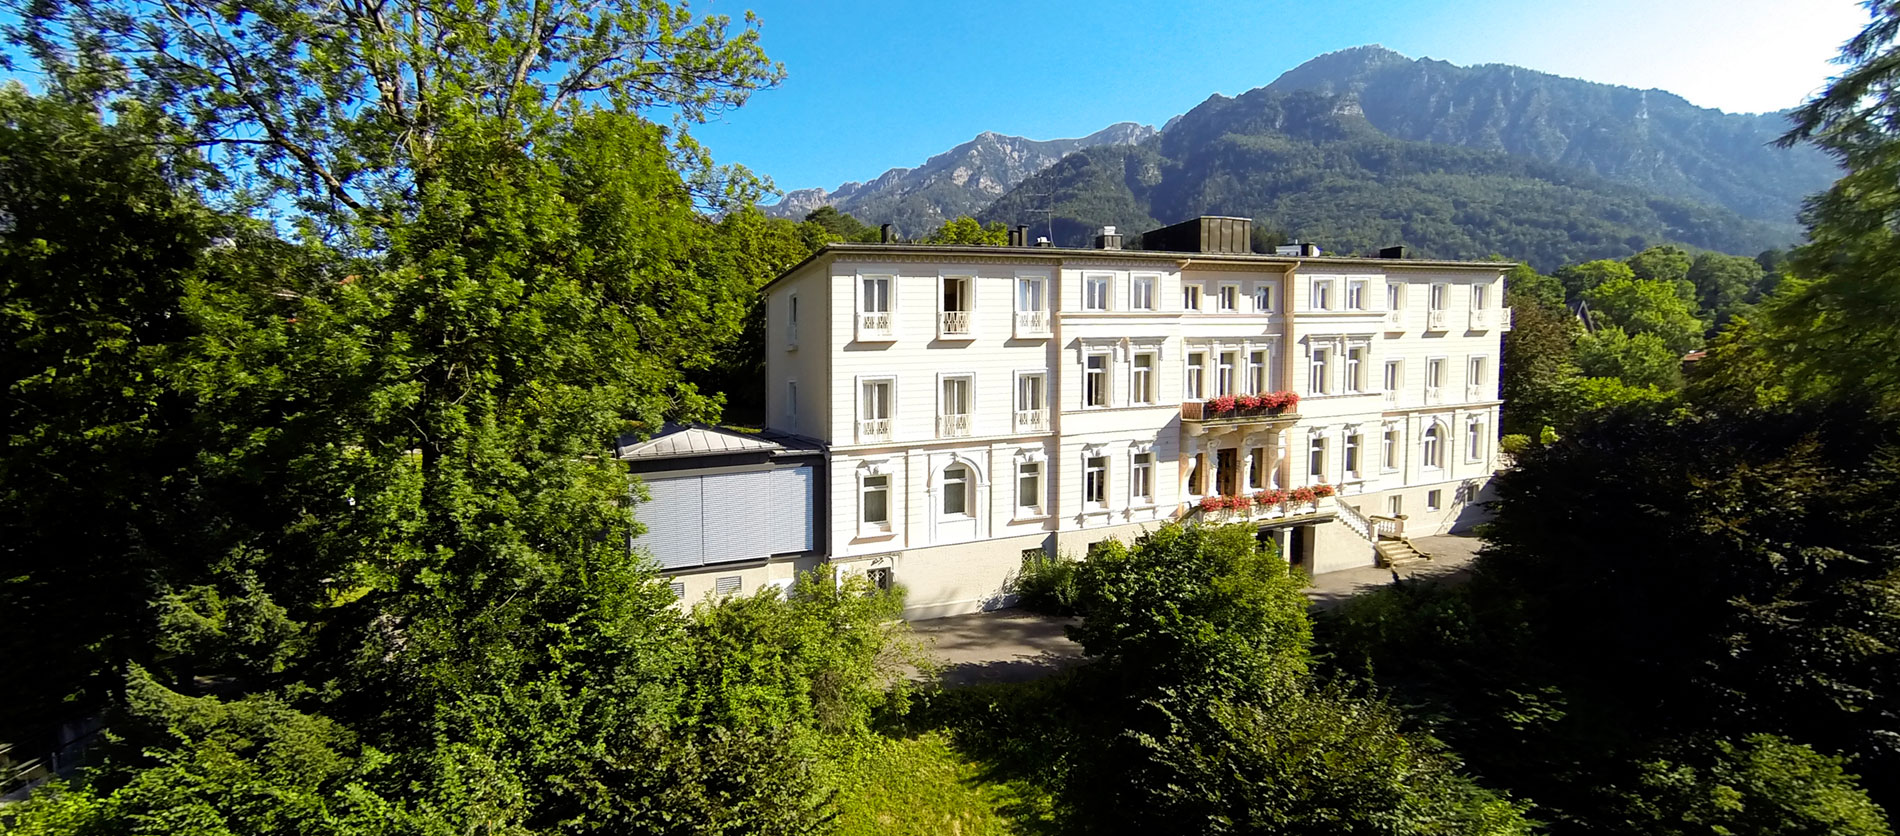 Kurhotel Alpina - Your Spa Holiday in Bad Reichenhall